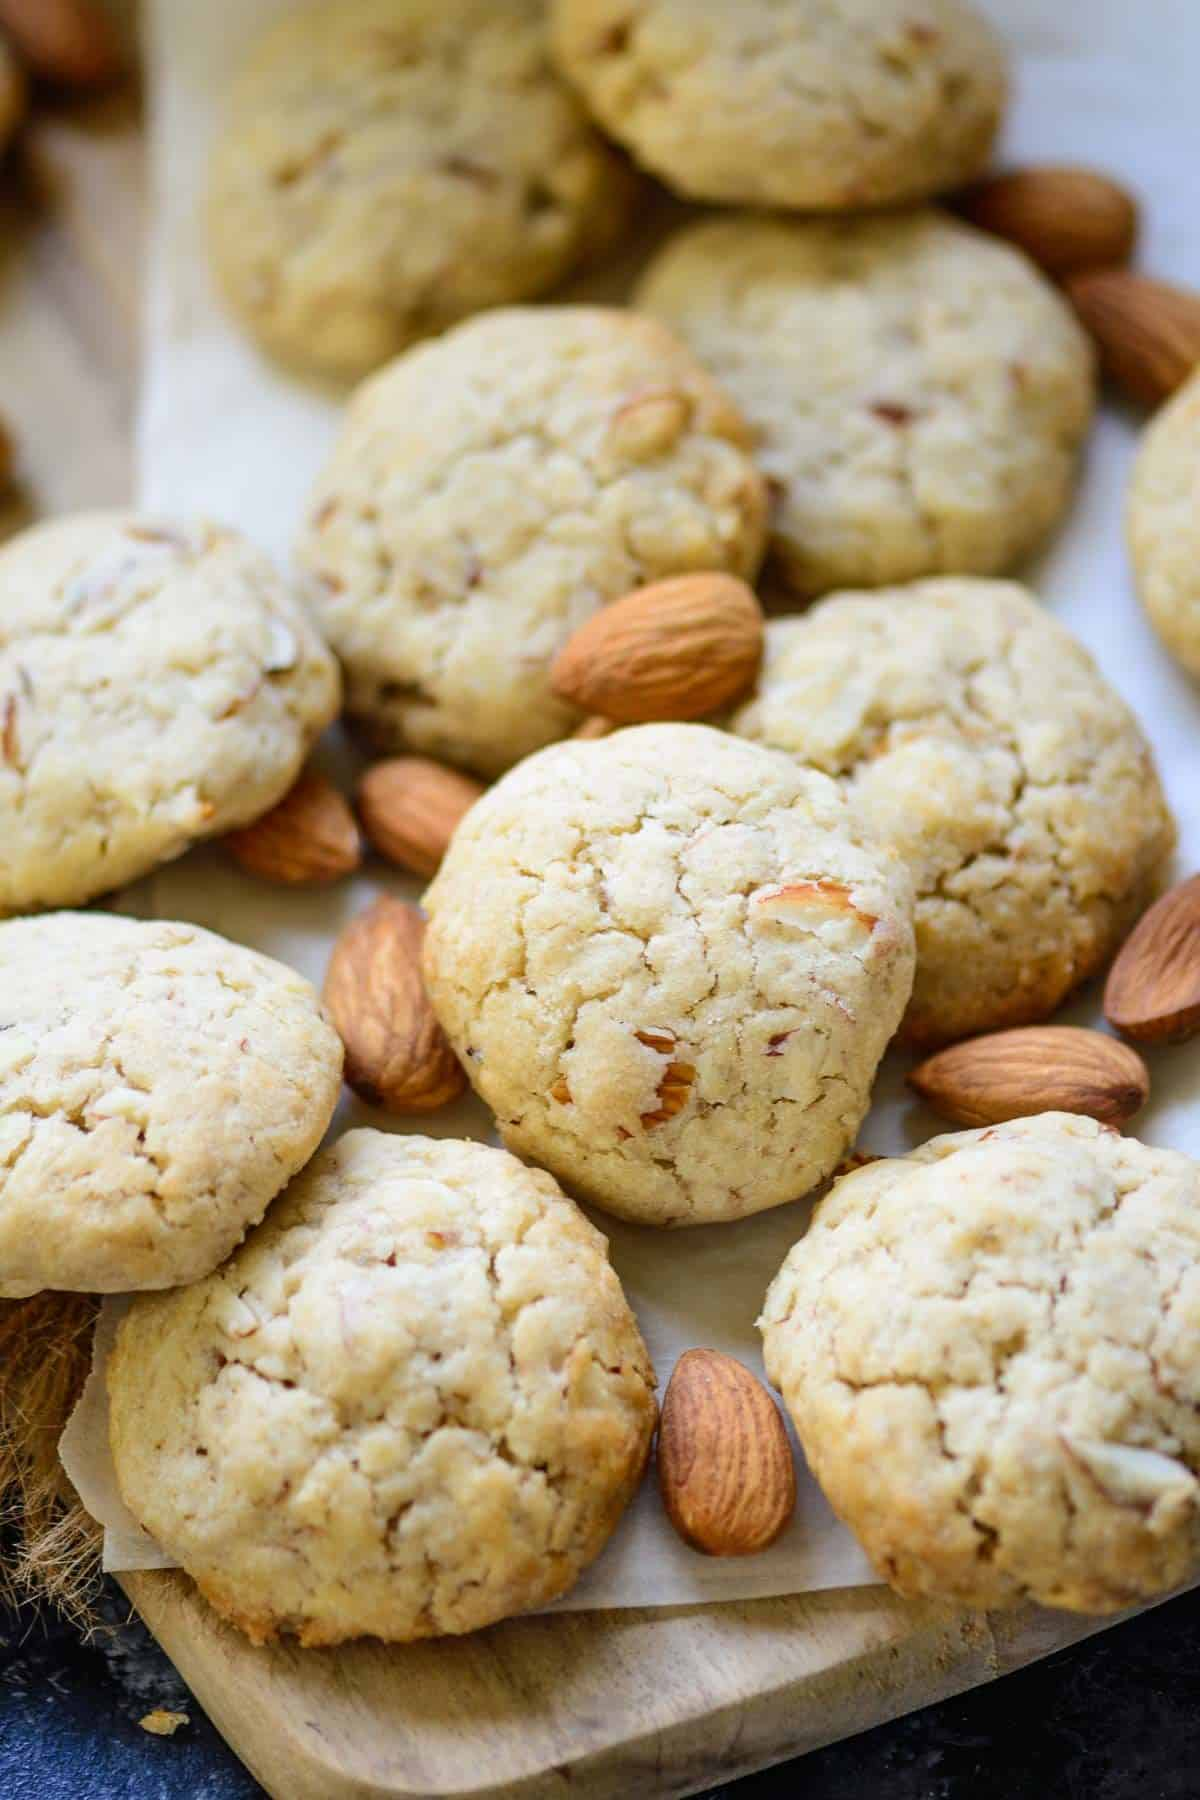 Almond Cookies served on a platter.